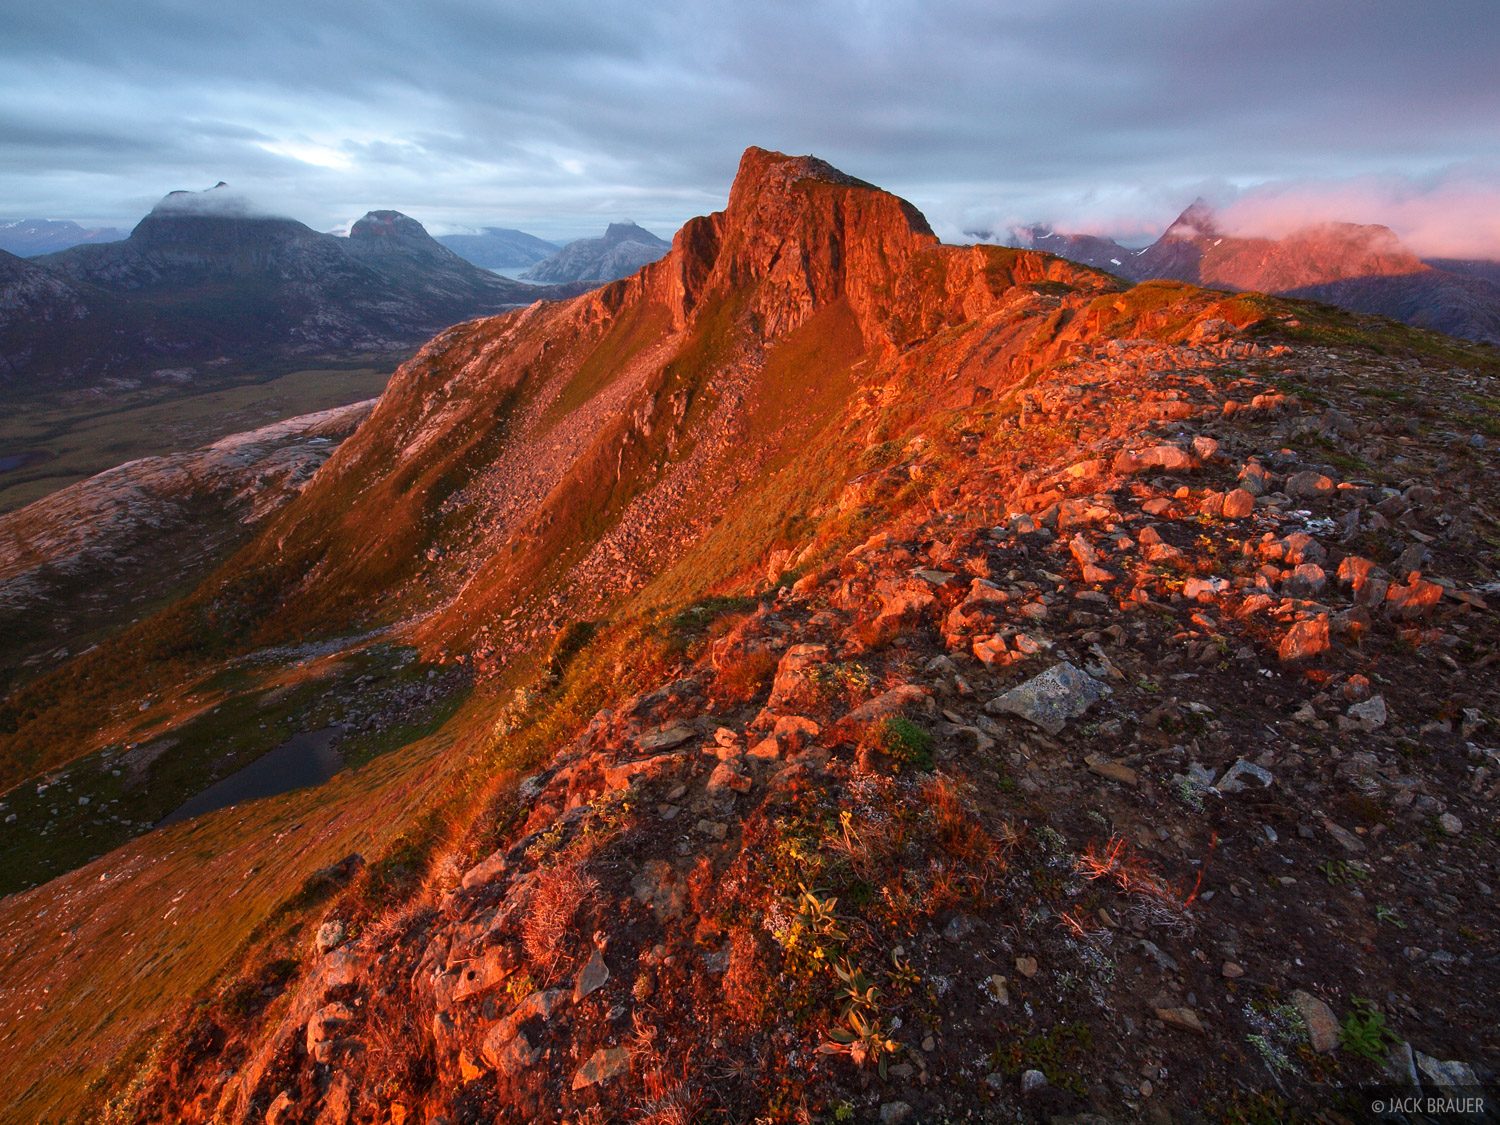 Blåfjellet peak illuminated by brilliant Arctic sunset light. This mountain is located near the tiny town of&nbsp...